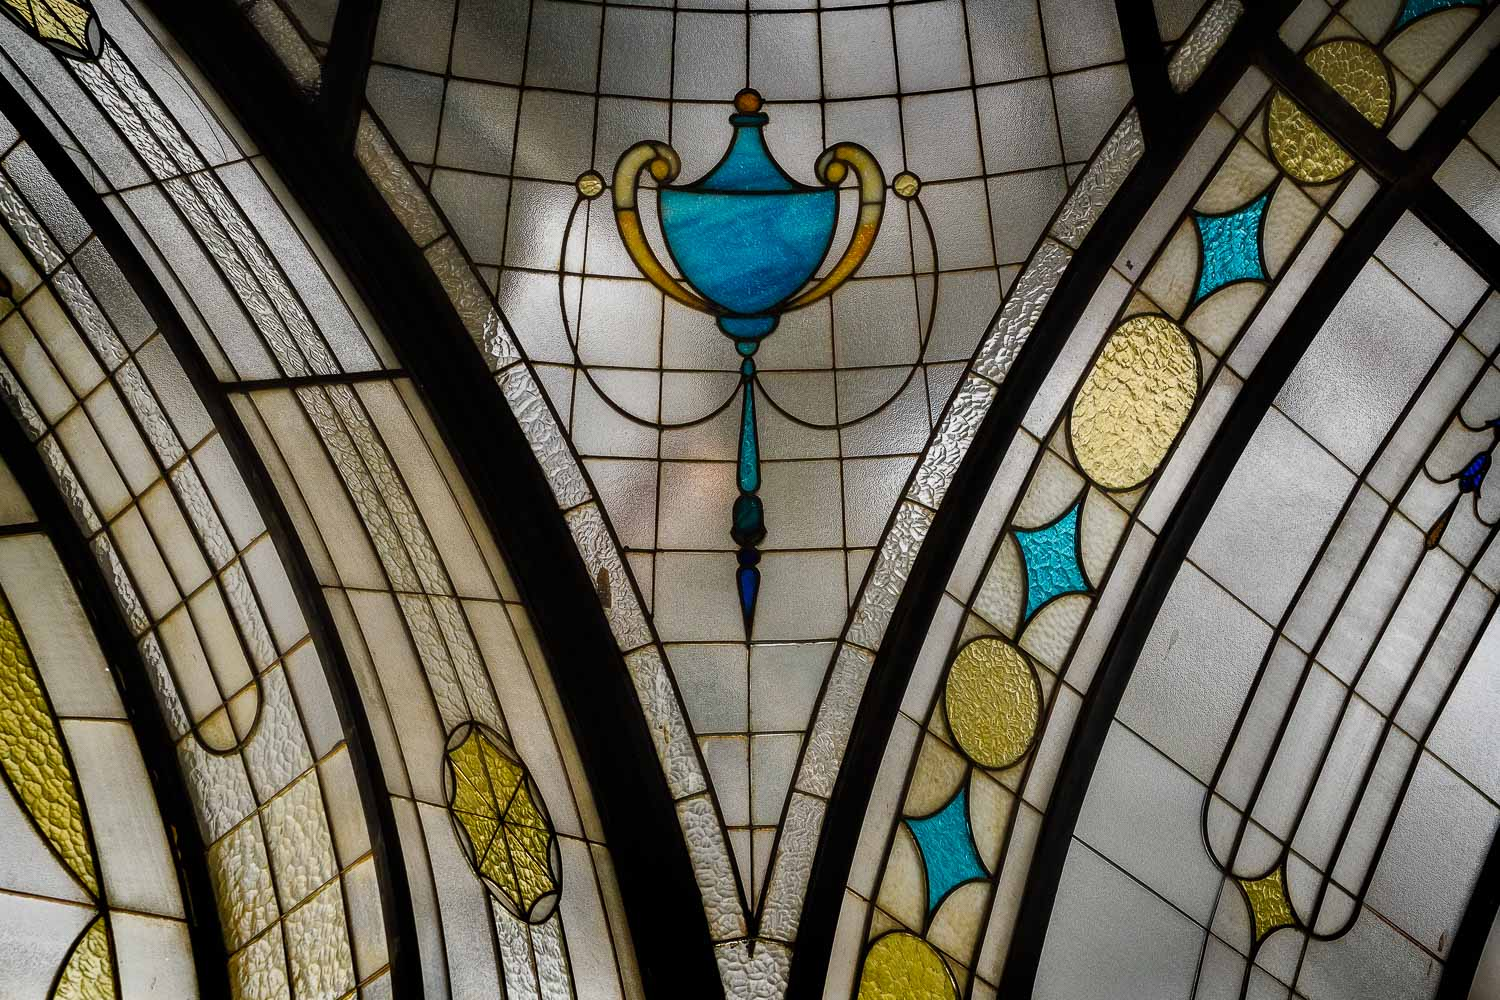 A lovely detail from the recently restored ground floor arcade at the  Nicholas Building, Swanston Street, Melbourne .